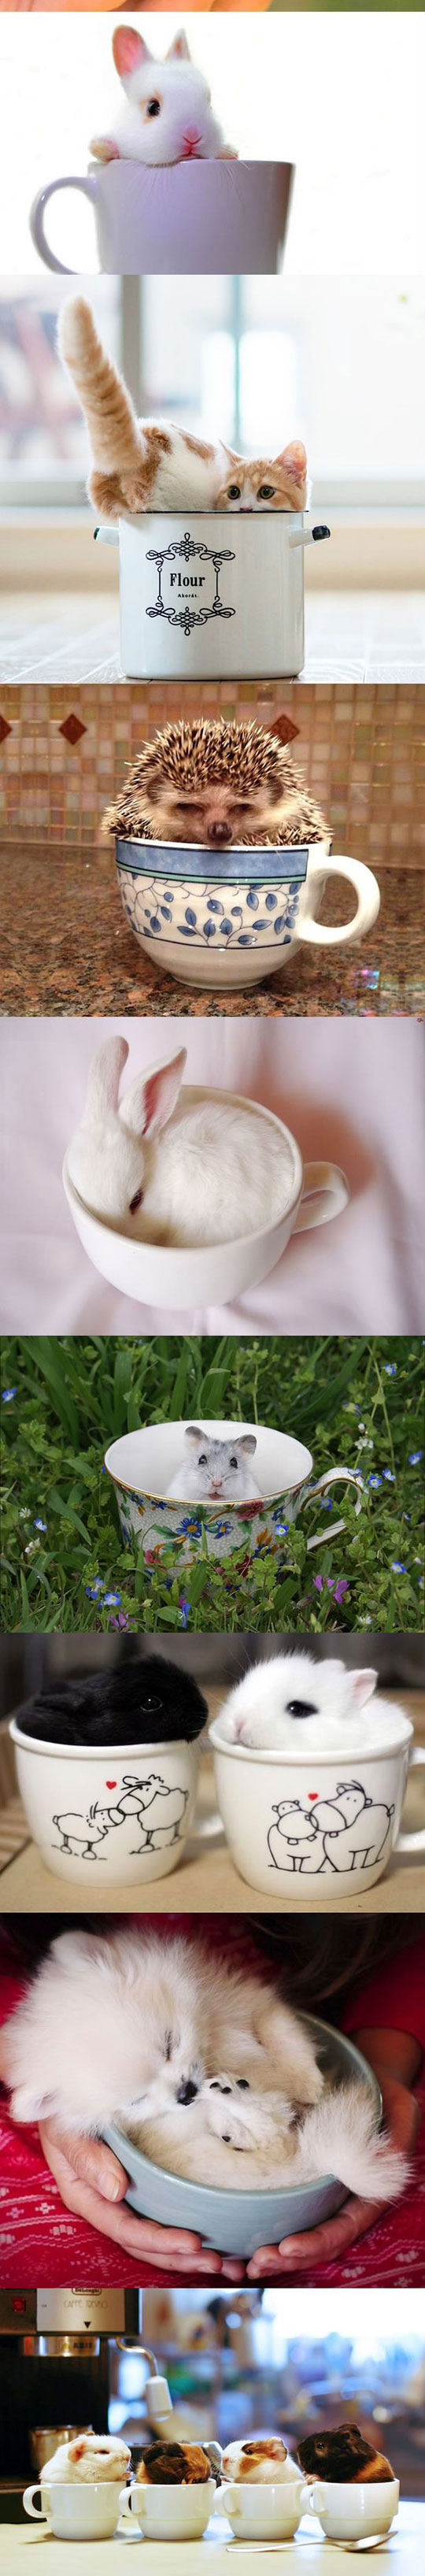 cute-animal-pets-cups-playing